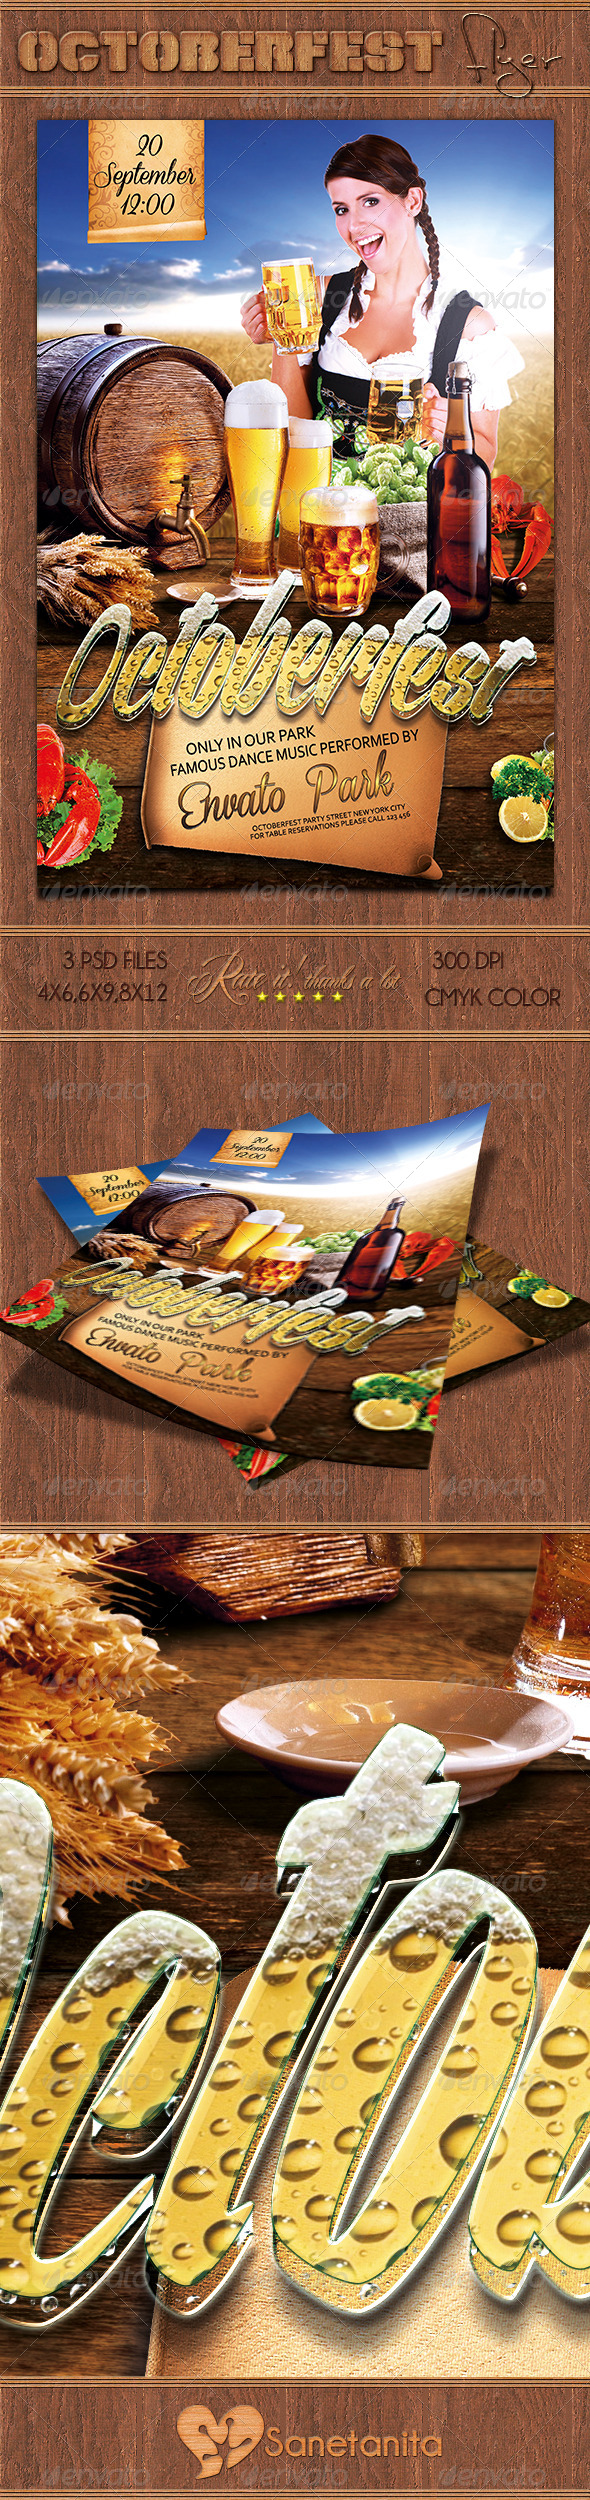 GraphicRiver Octoberfest Flyer 8751668